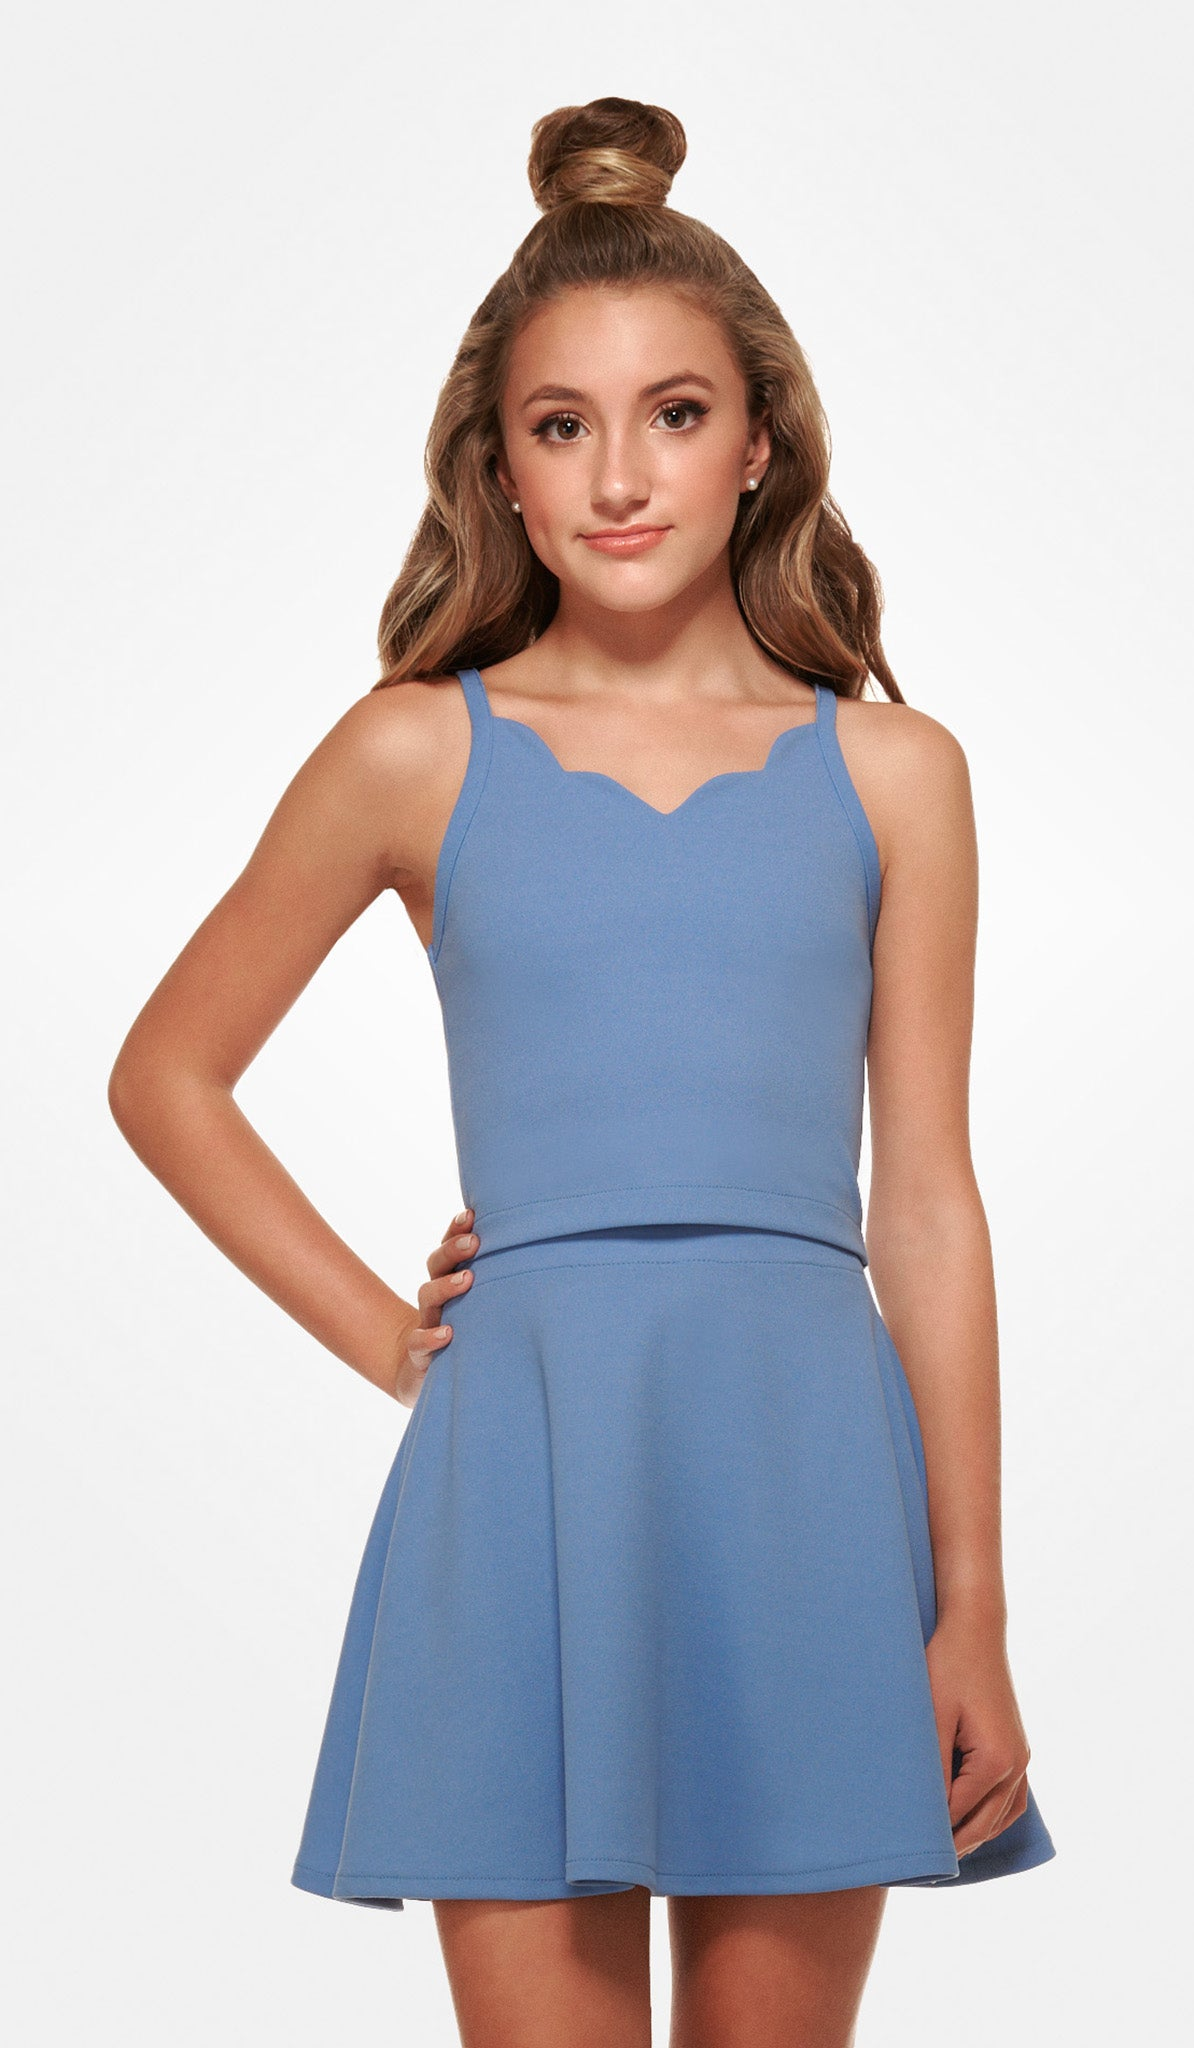 The Sally Miller Coco Set - Blue scallop crepe georgette fit and flare skirt set